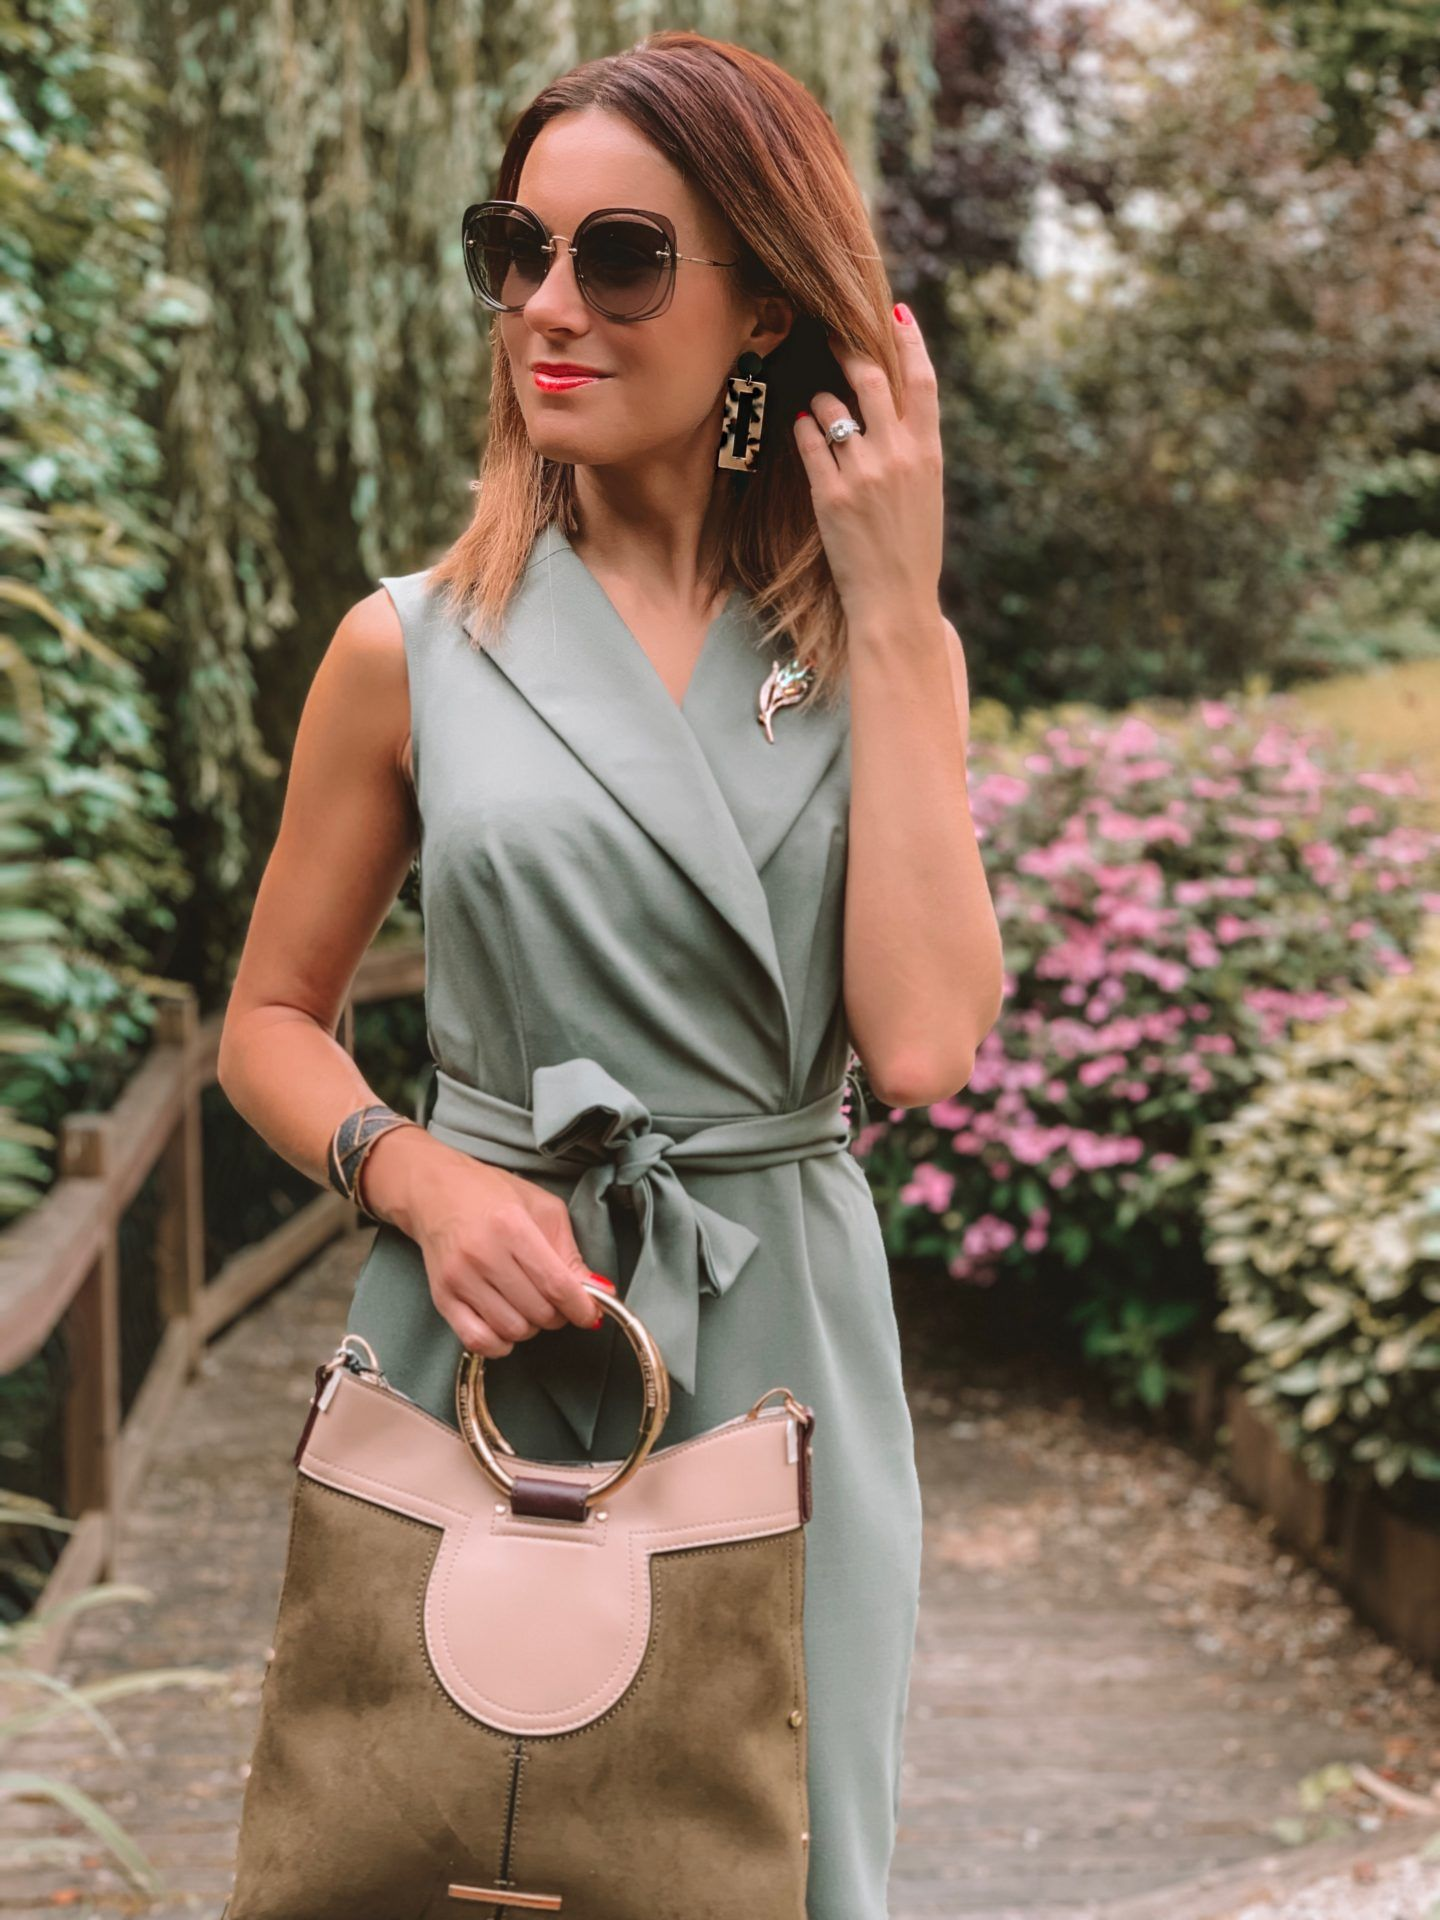 Closet London Khaki Collared Midi Pencil Dress | Elegant Duchess Boutique brooch | Miu Miu sunglasses | River Island Bag